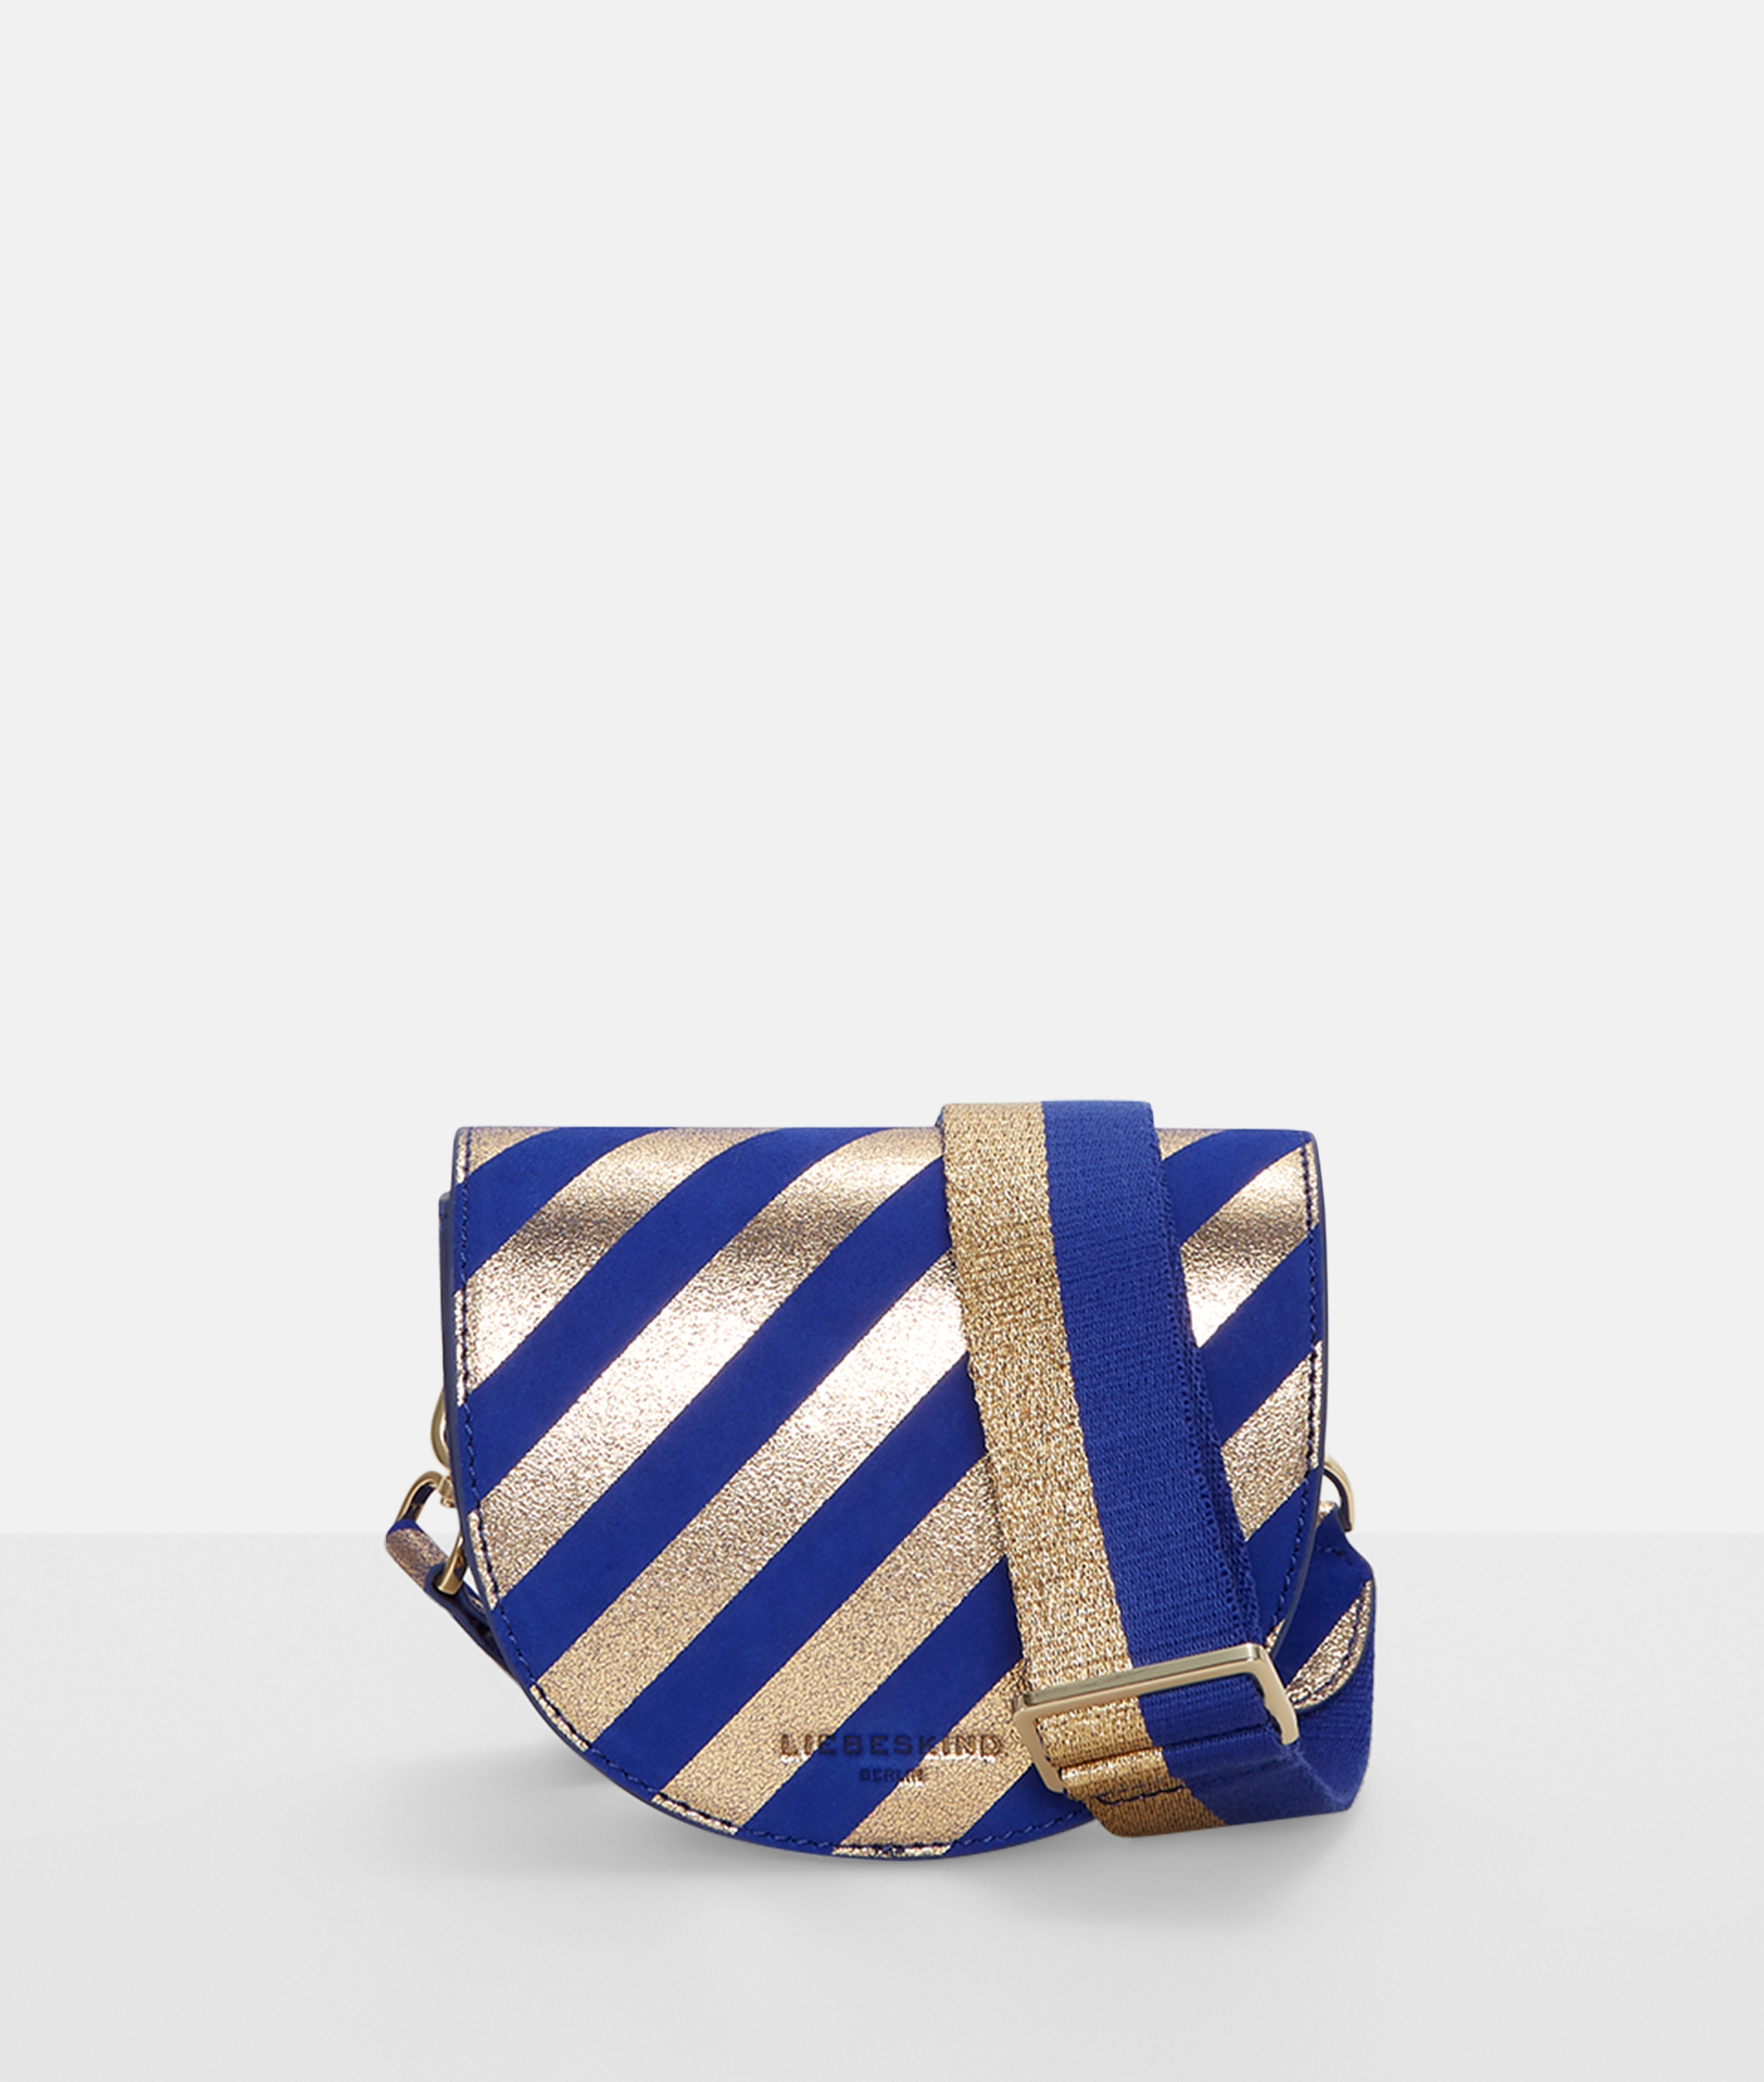 liebeskind berlin - Tasche MixeDbag Stripe Belt Bag, Blau